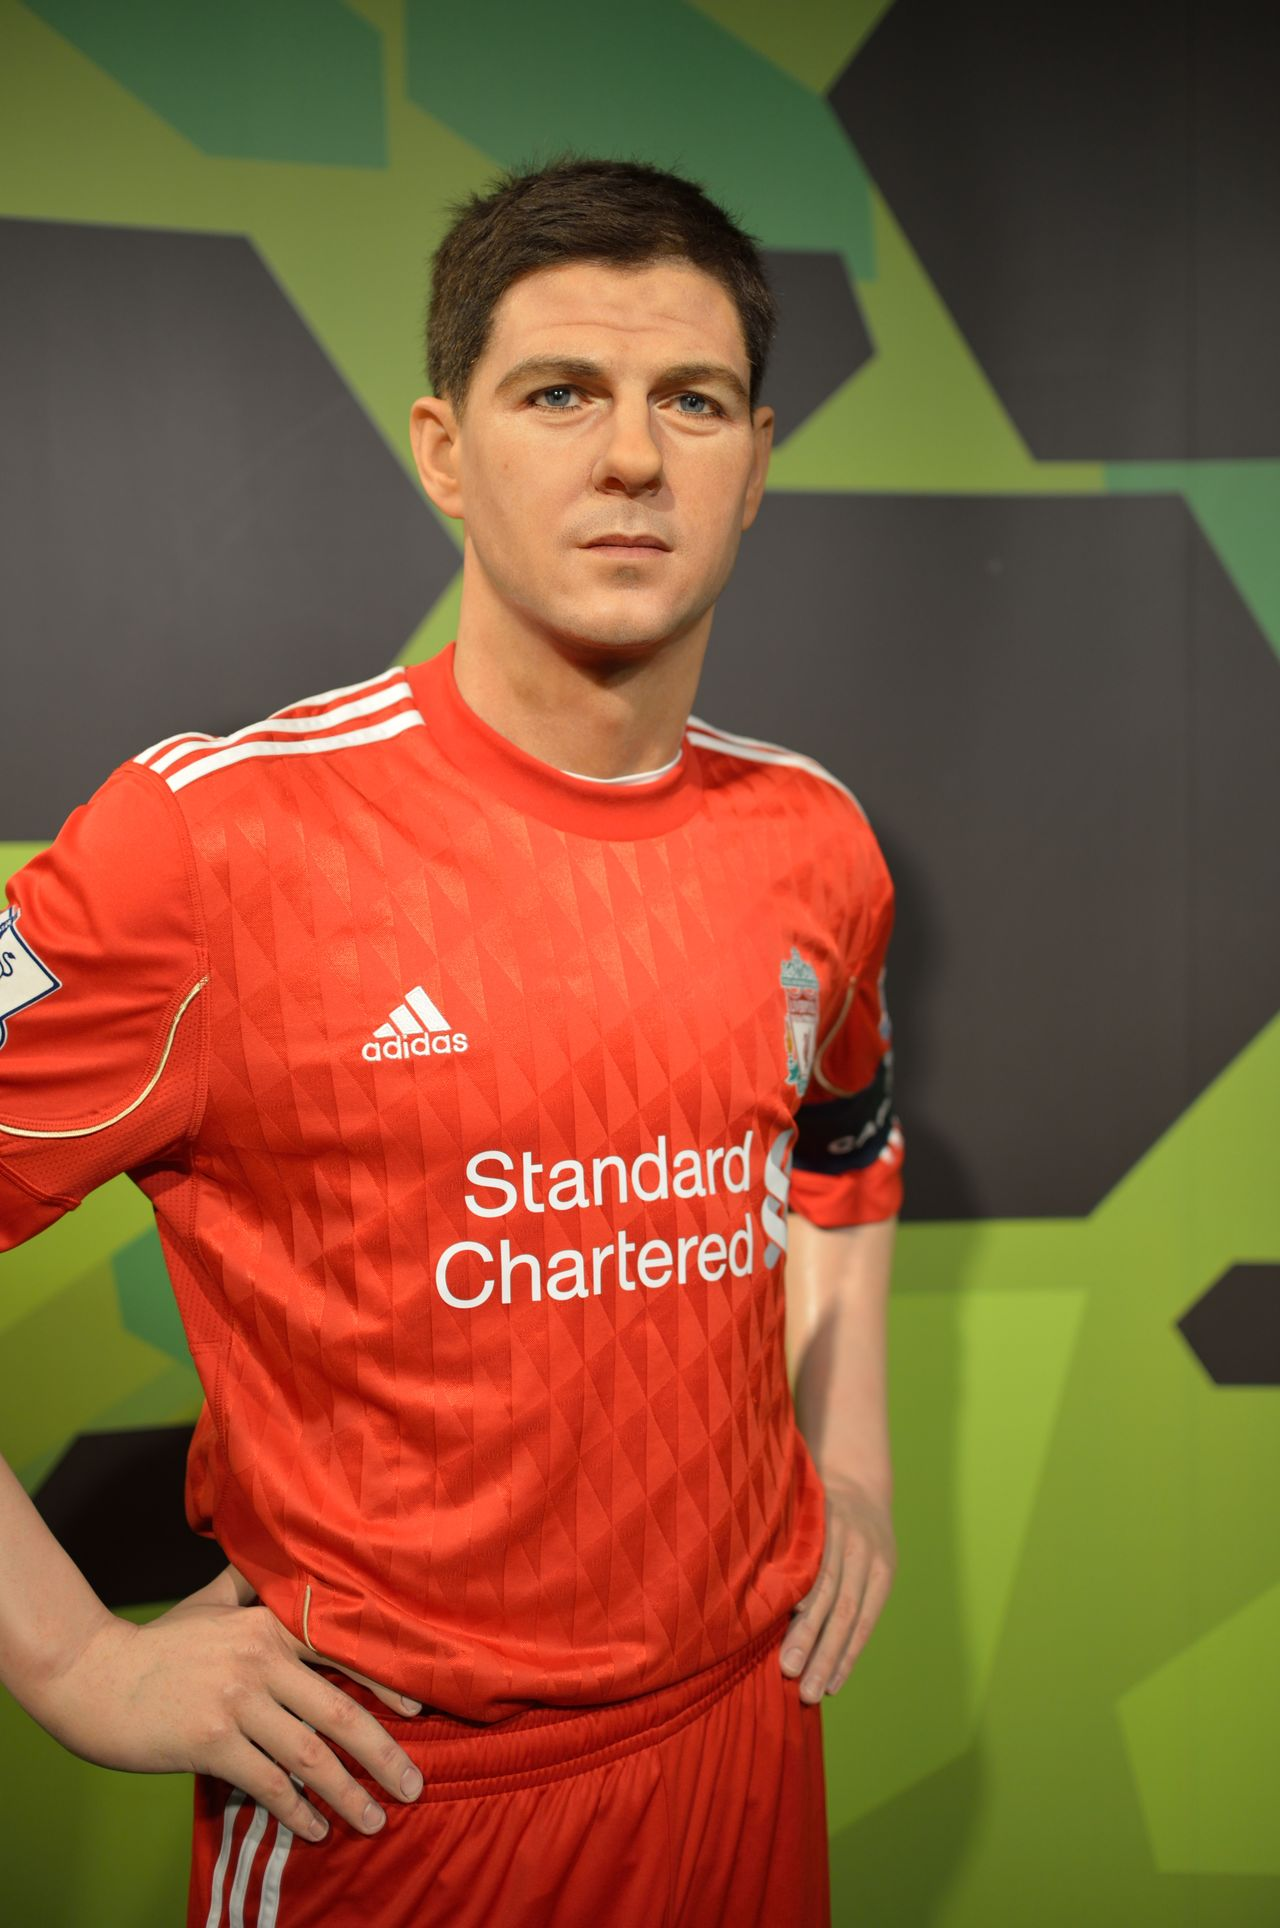 Steven Gerrard Casual Clothing Childhood Composition Confidence  Fashion Front View Happiness Innocence Leisure Activity Lifestyles Looking At Camera Madame Tussauds Person Perspective Portrait Real People Standing Three Quarter Length Waist Up Wax Dolls Wax Museum Young Adult Young Men